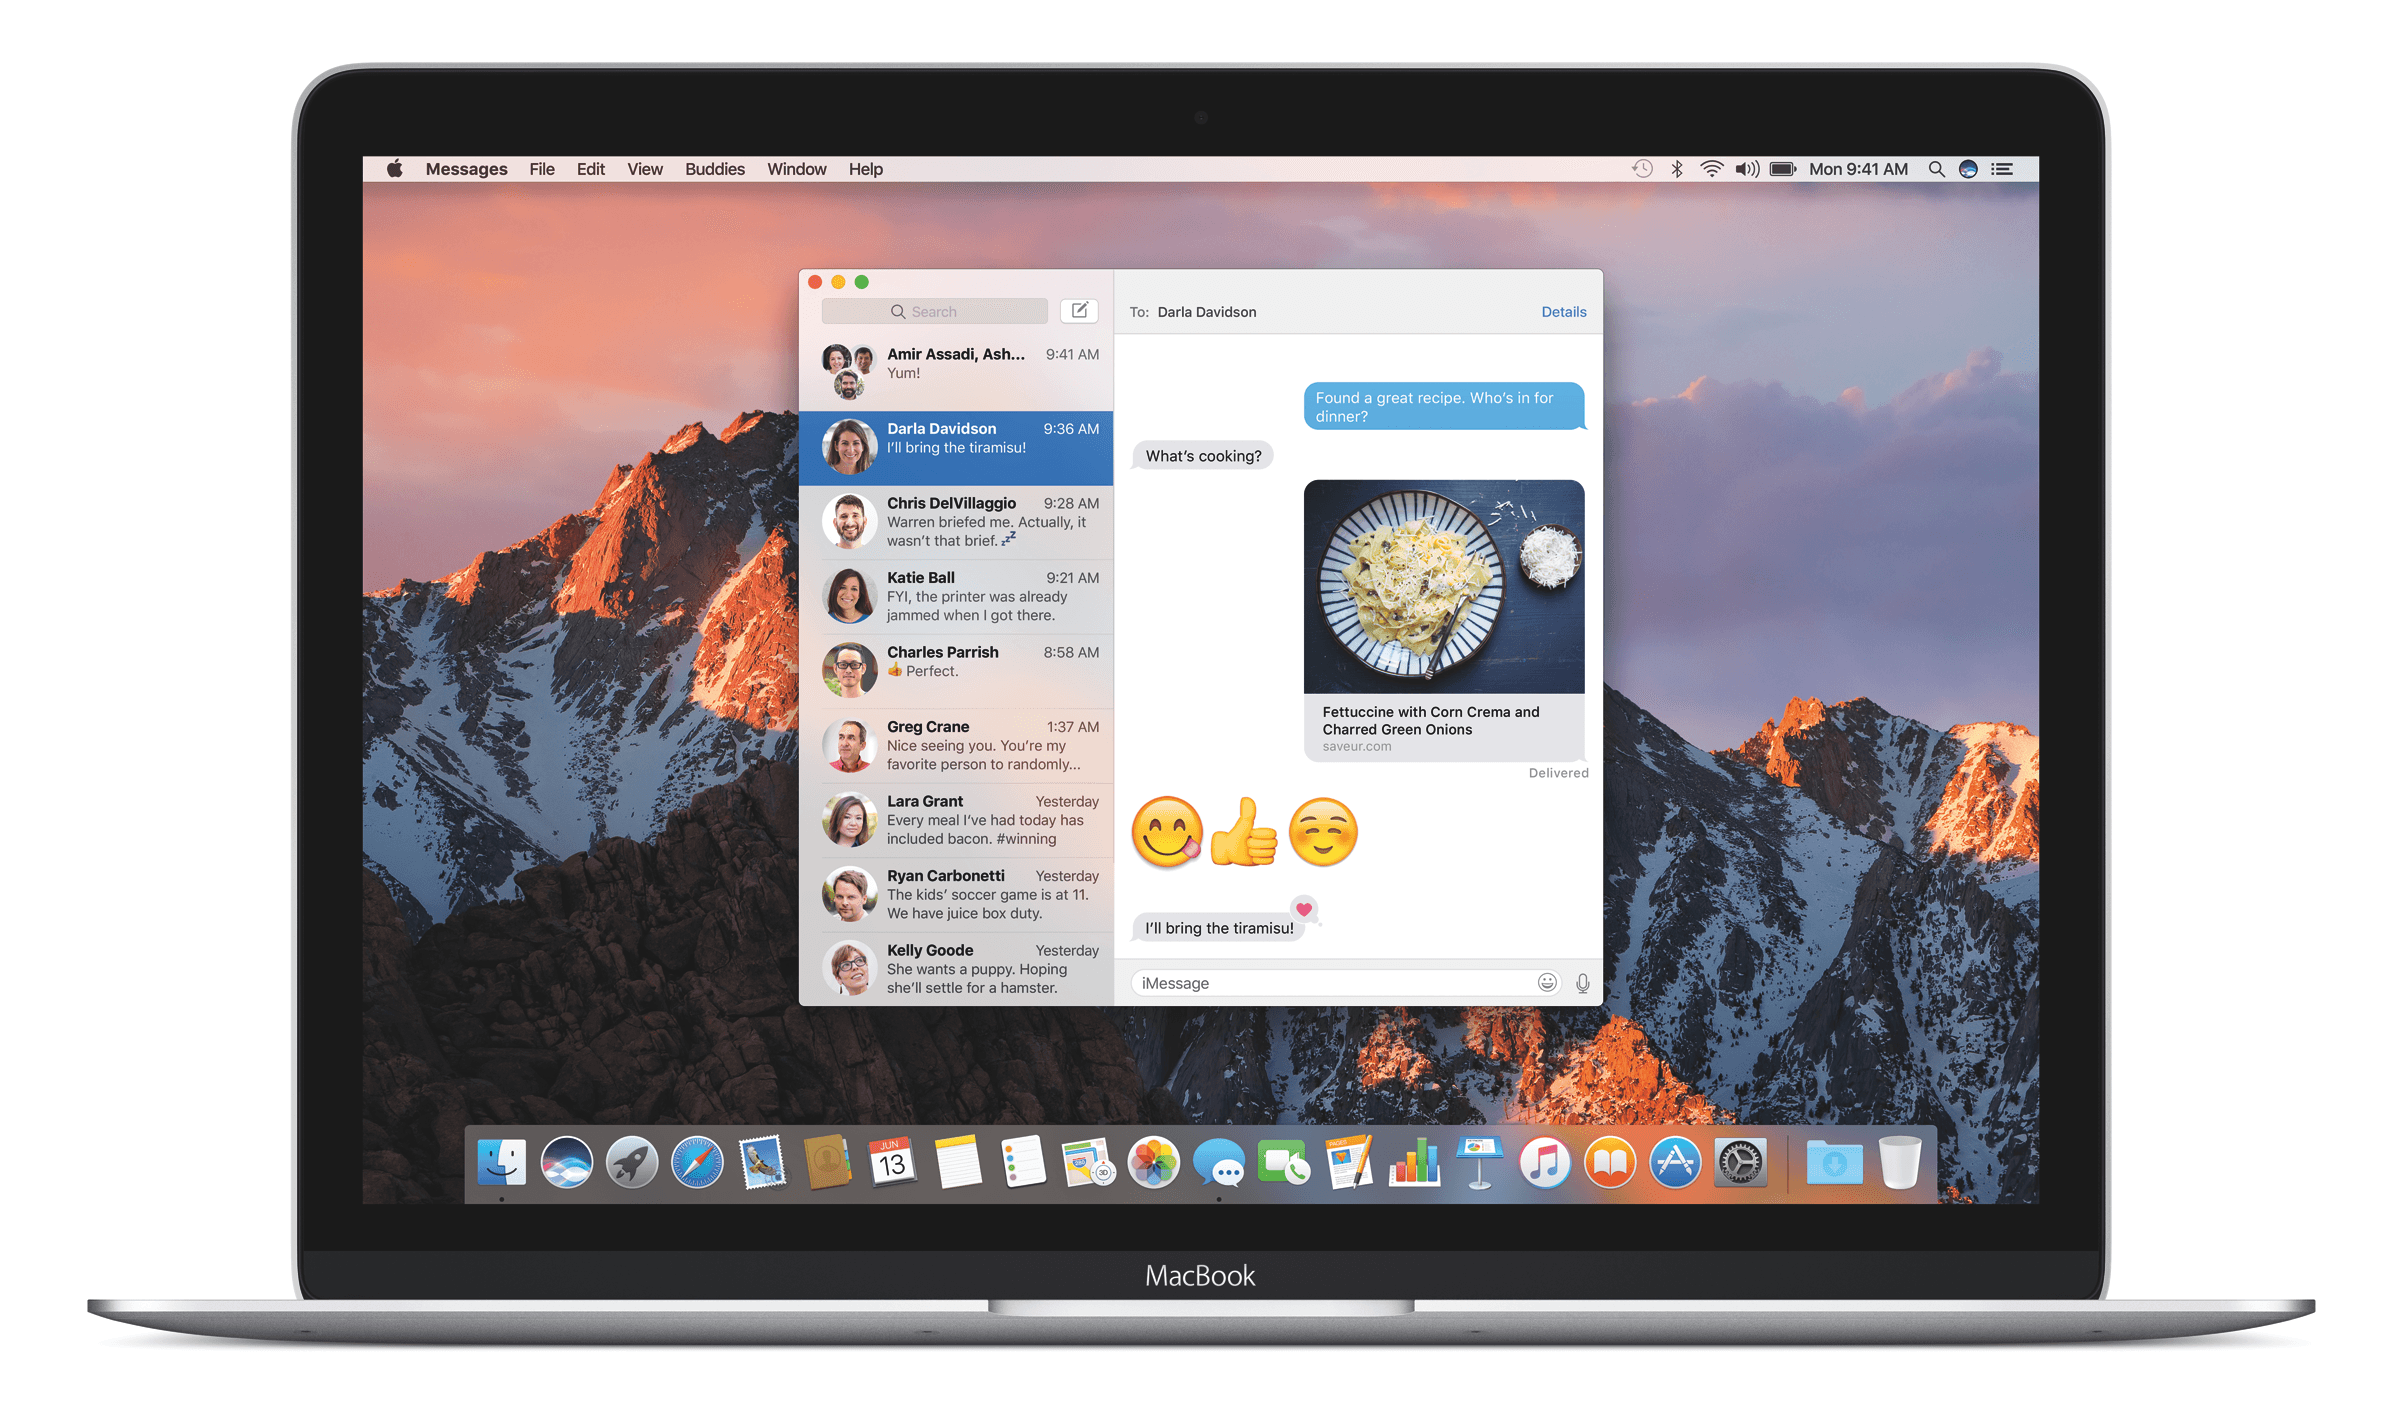 The new Messages app in macOS Sierra